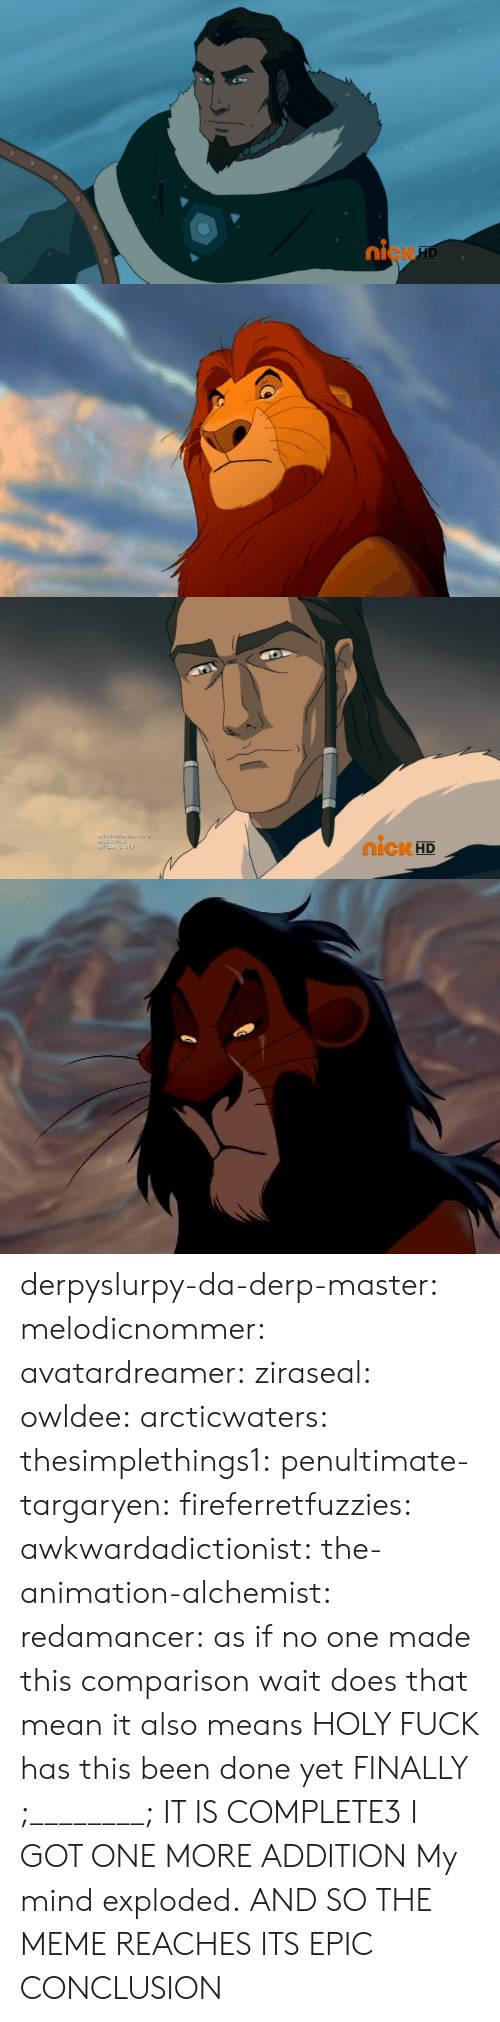 Disney, Gif, and Meme: 0  ni  cK   IcK HD  ME derpyslurpy-da-derp-master:  melodicnommer:  avatardreamer:  ziraseal:  owldee:  arcticwaters:  thesimplethings1:  penultimate-targaryen:  fireferretfuzzies:  awkwardadictionist:  the-animation-alchemist:  redamancer:  as if no one made this comparison        wait does that mean    it also means   HOLY FUCK  has this been done yet    FINALLY ;________; IT IS COMPLETE3  I GOT ONE MORE ADDITION   My mind exploded.   AND SO THE MEME REACHES ITS EPIC CONCLUSION